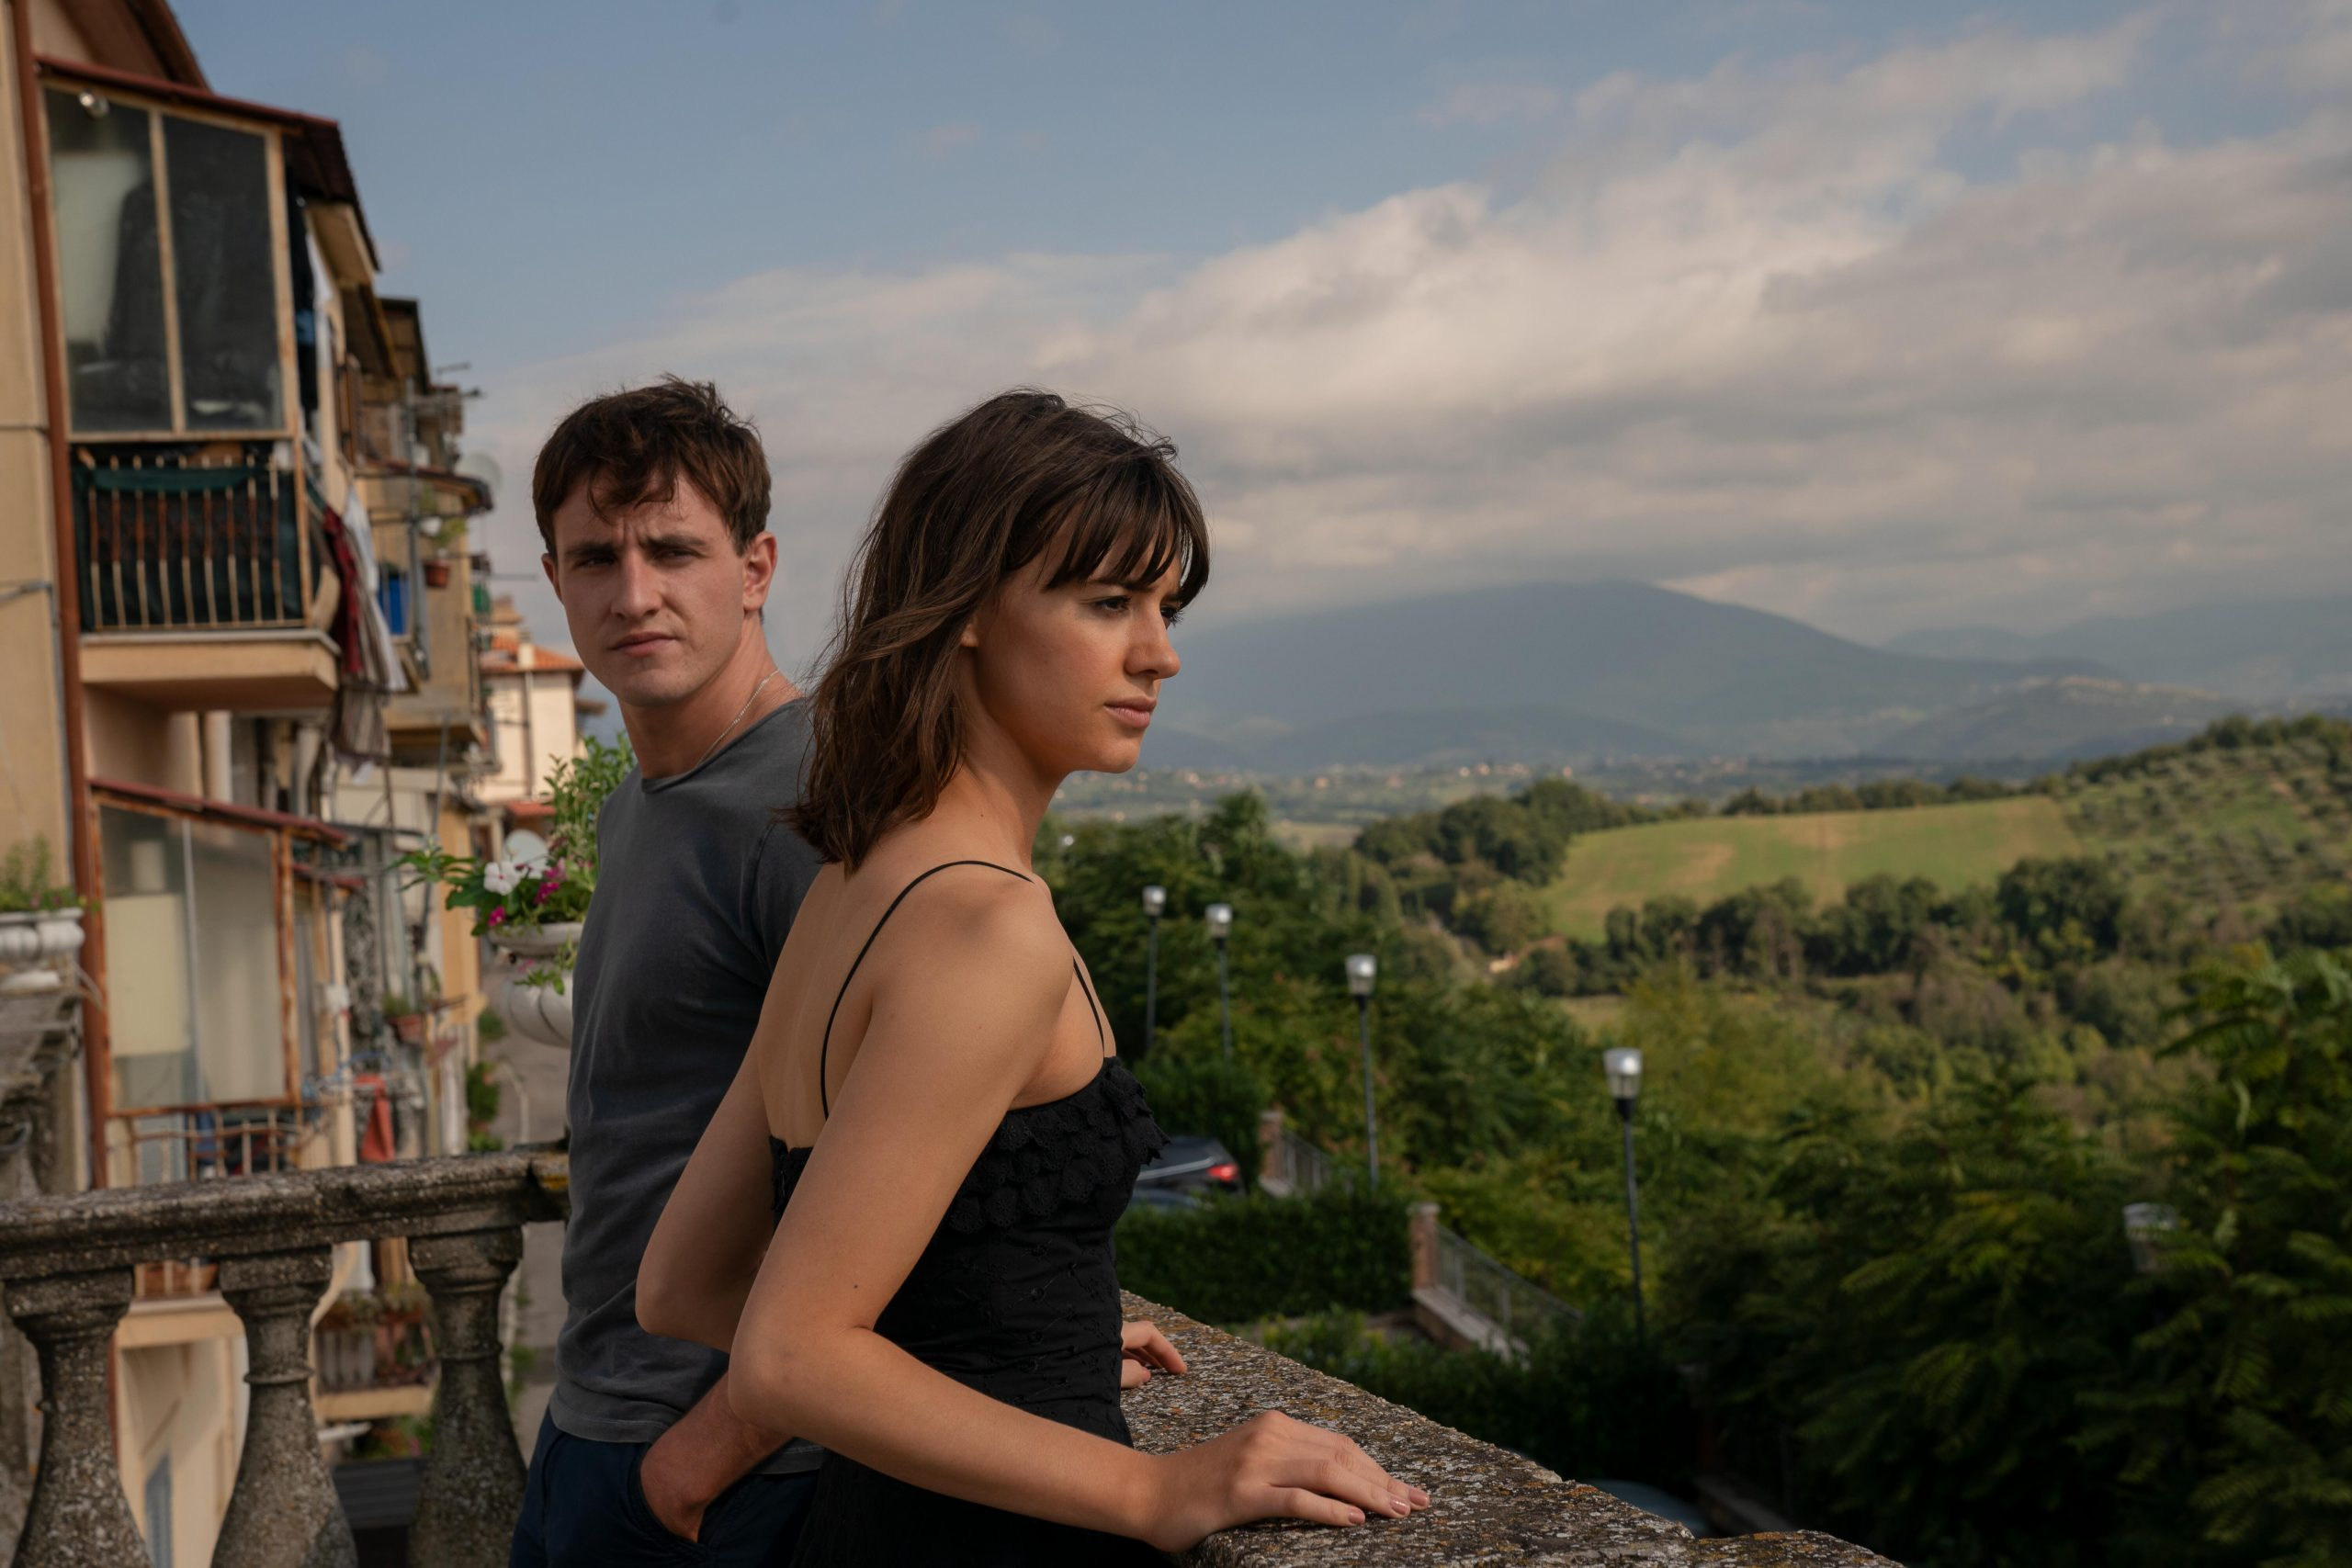 Connell and Marianne standing on a balcony in an episode of Normal People